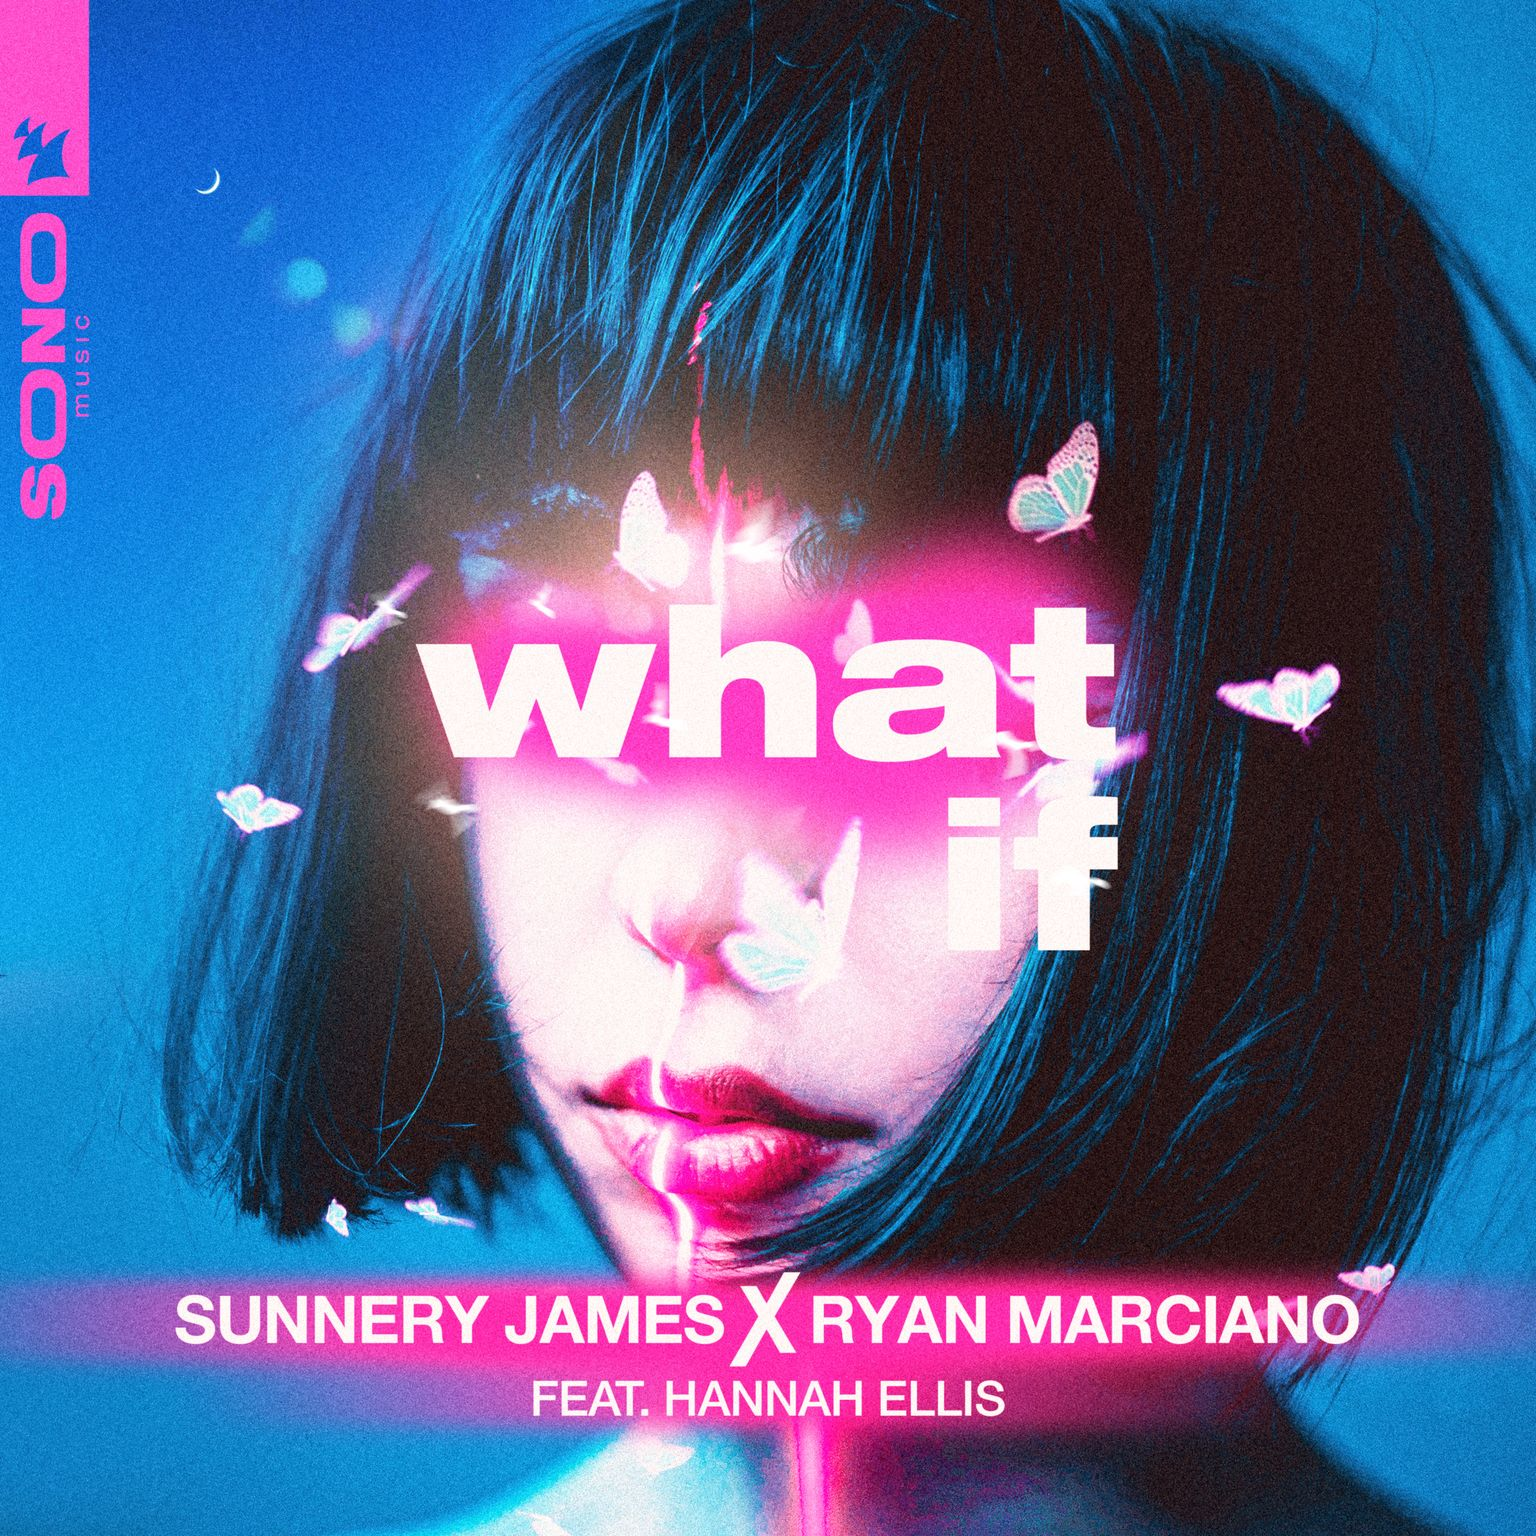 """Sunnery James and Ryan Marciano - """"What If"""" (featuring Hannah Ellis) single artwork"""